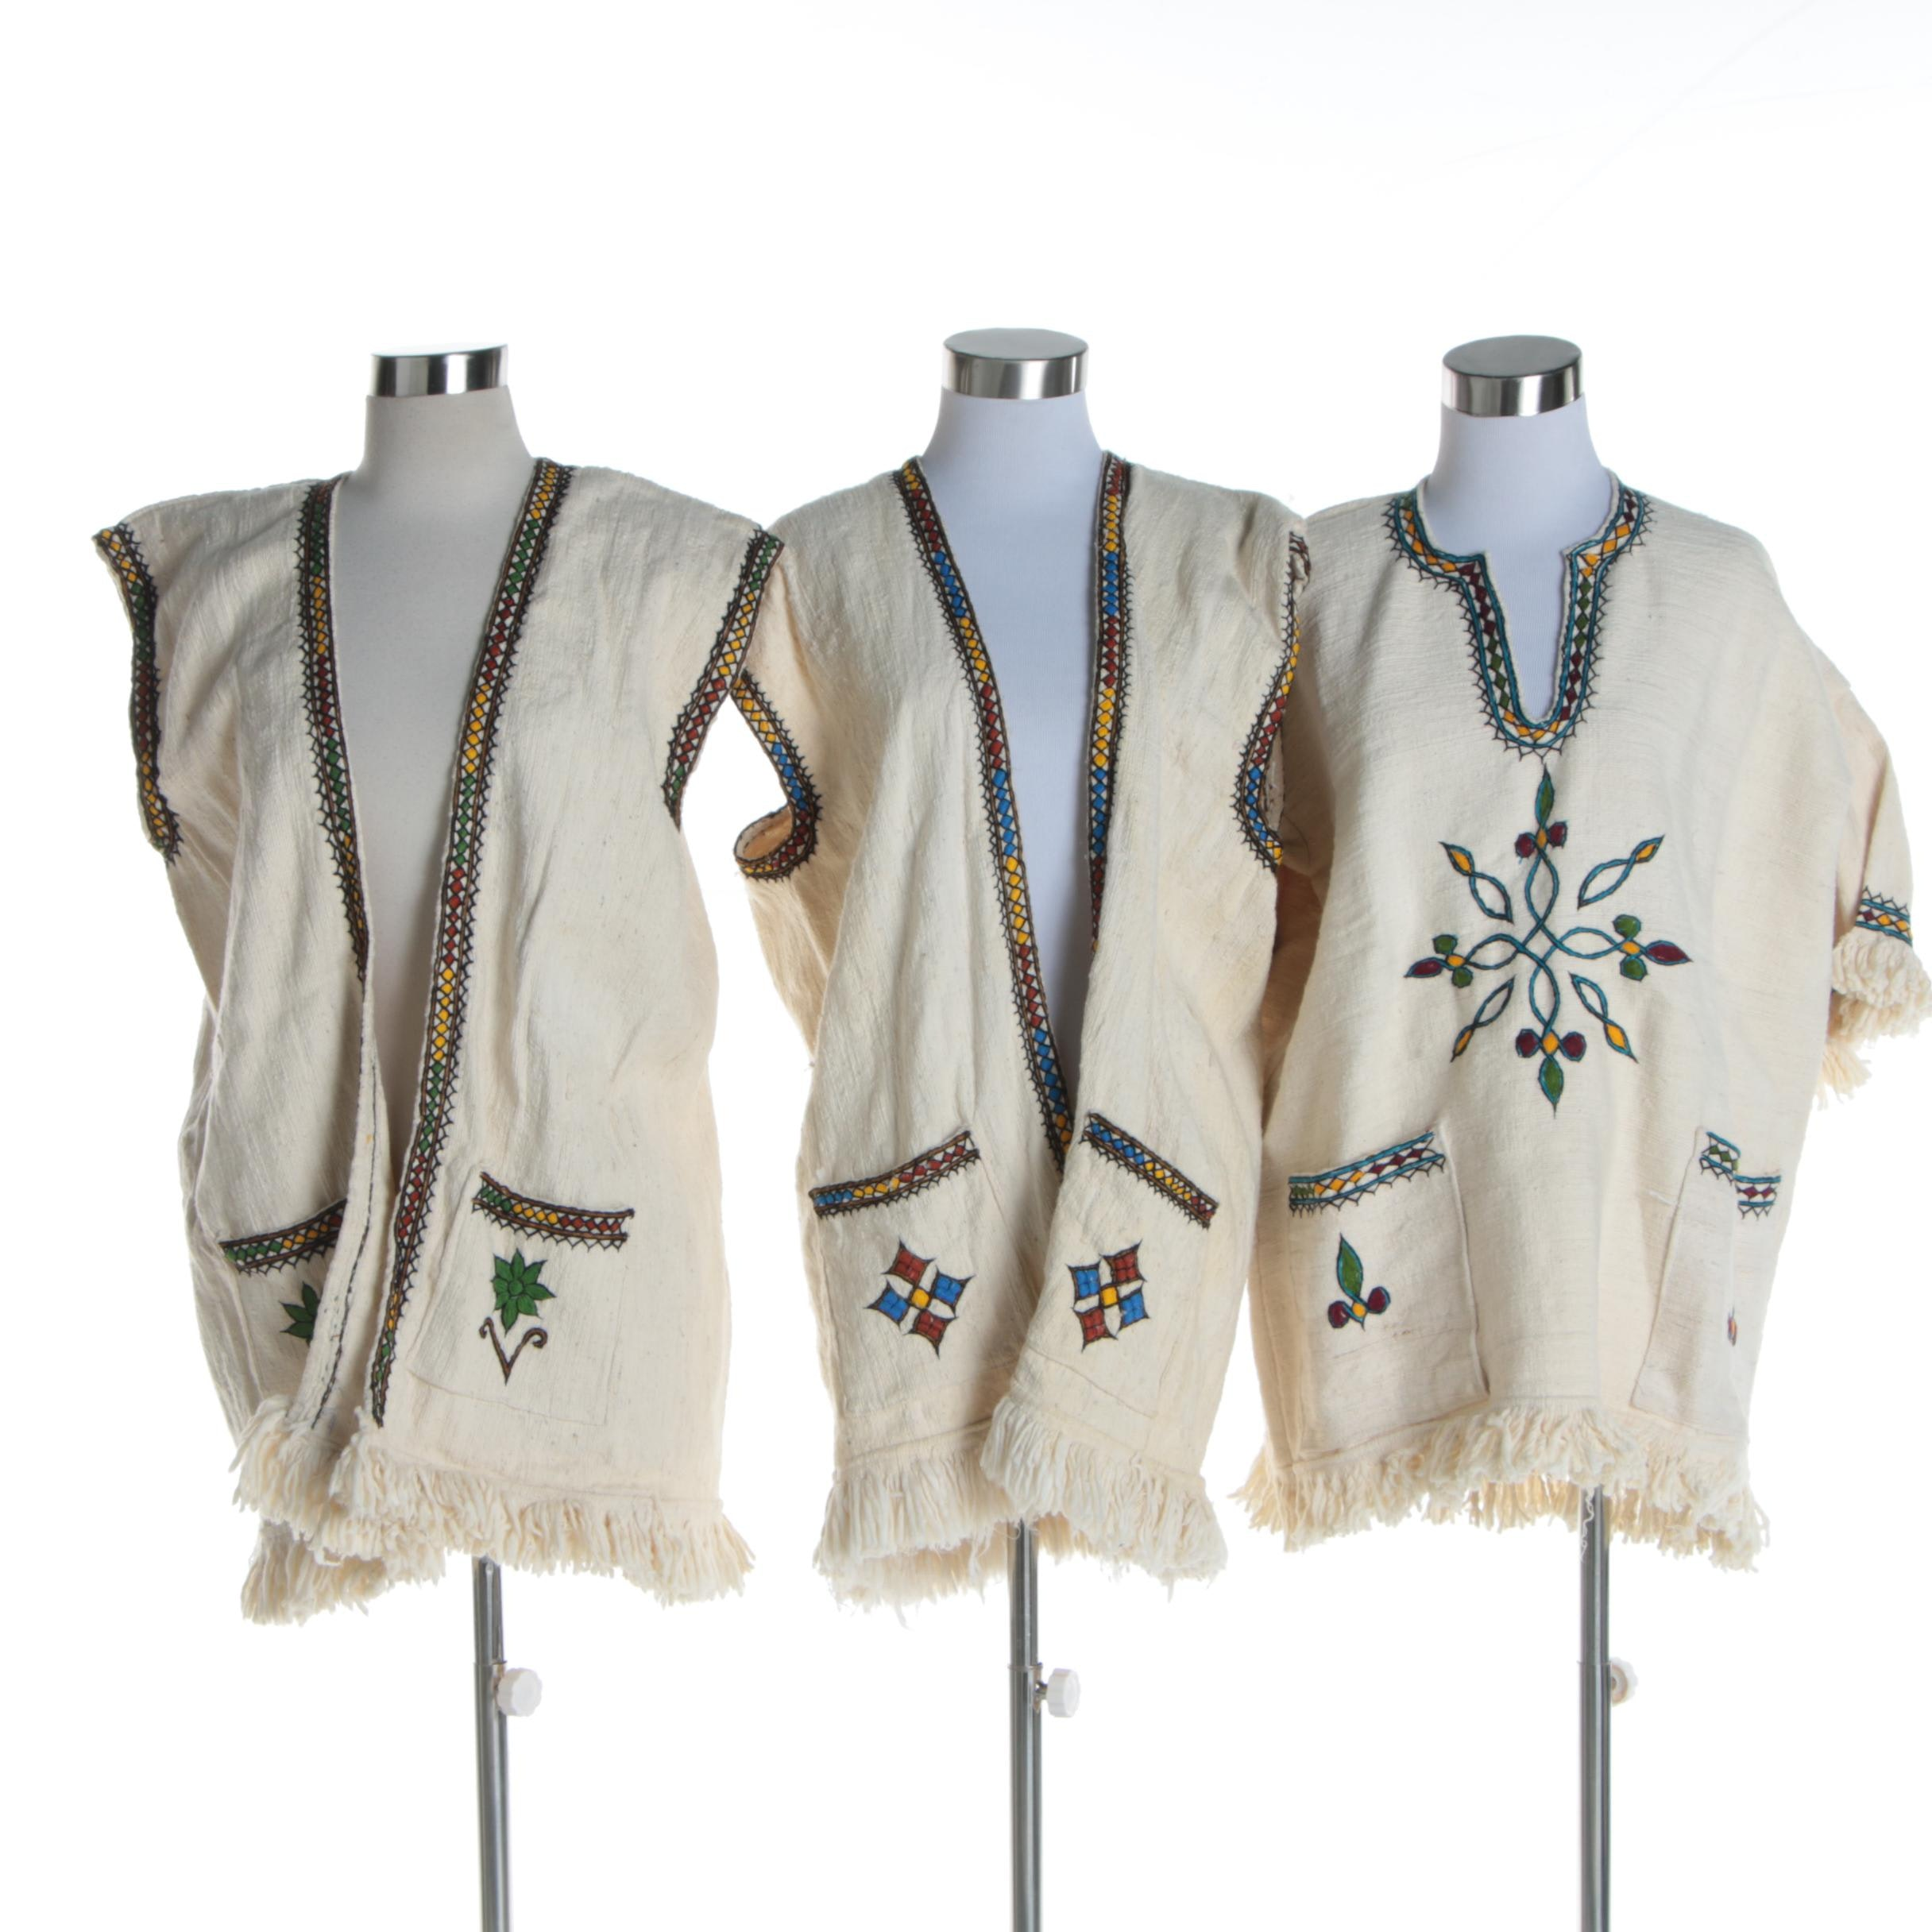 Handwoven and Embroidered Ethiopian Tunic with Matching Vests